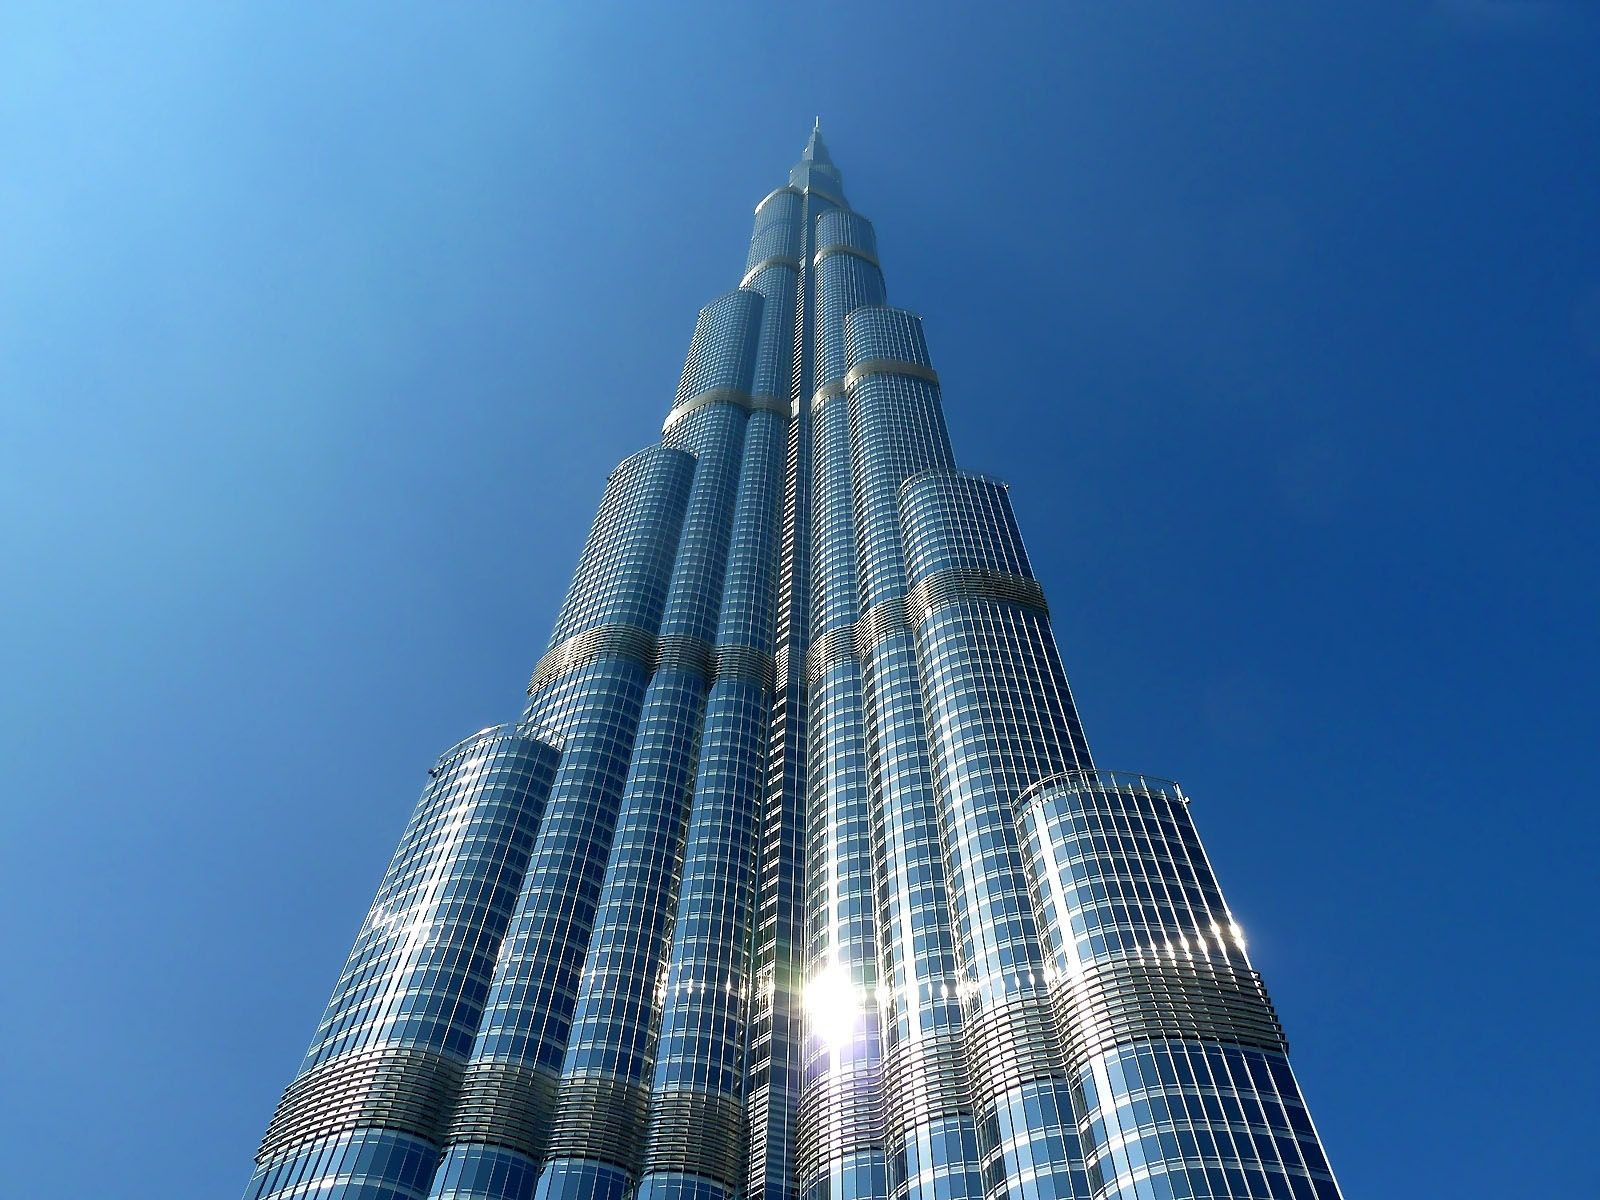 Void Matters Architecture Middle East Burj Khalifa